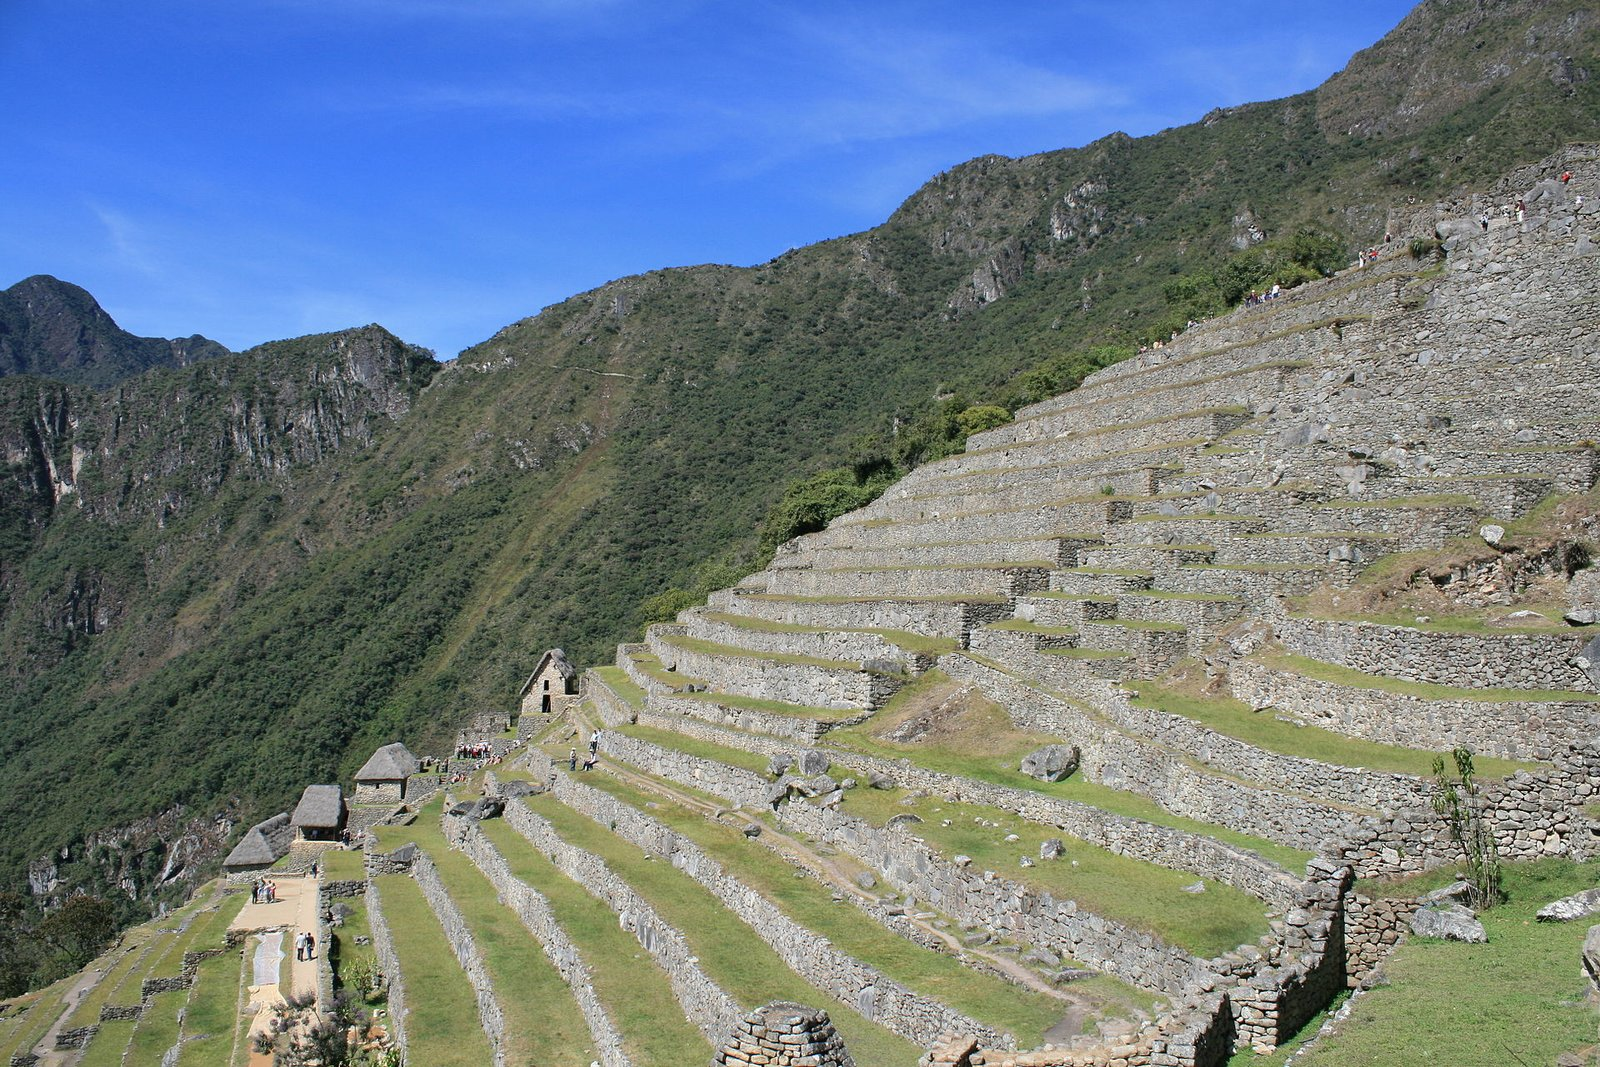 Work Begins on a New Airport at Machu Picchu, Sparking Protests